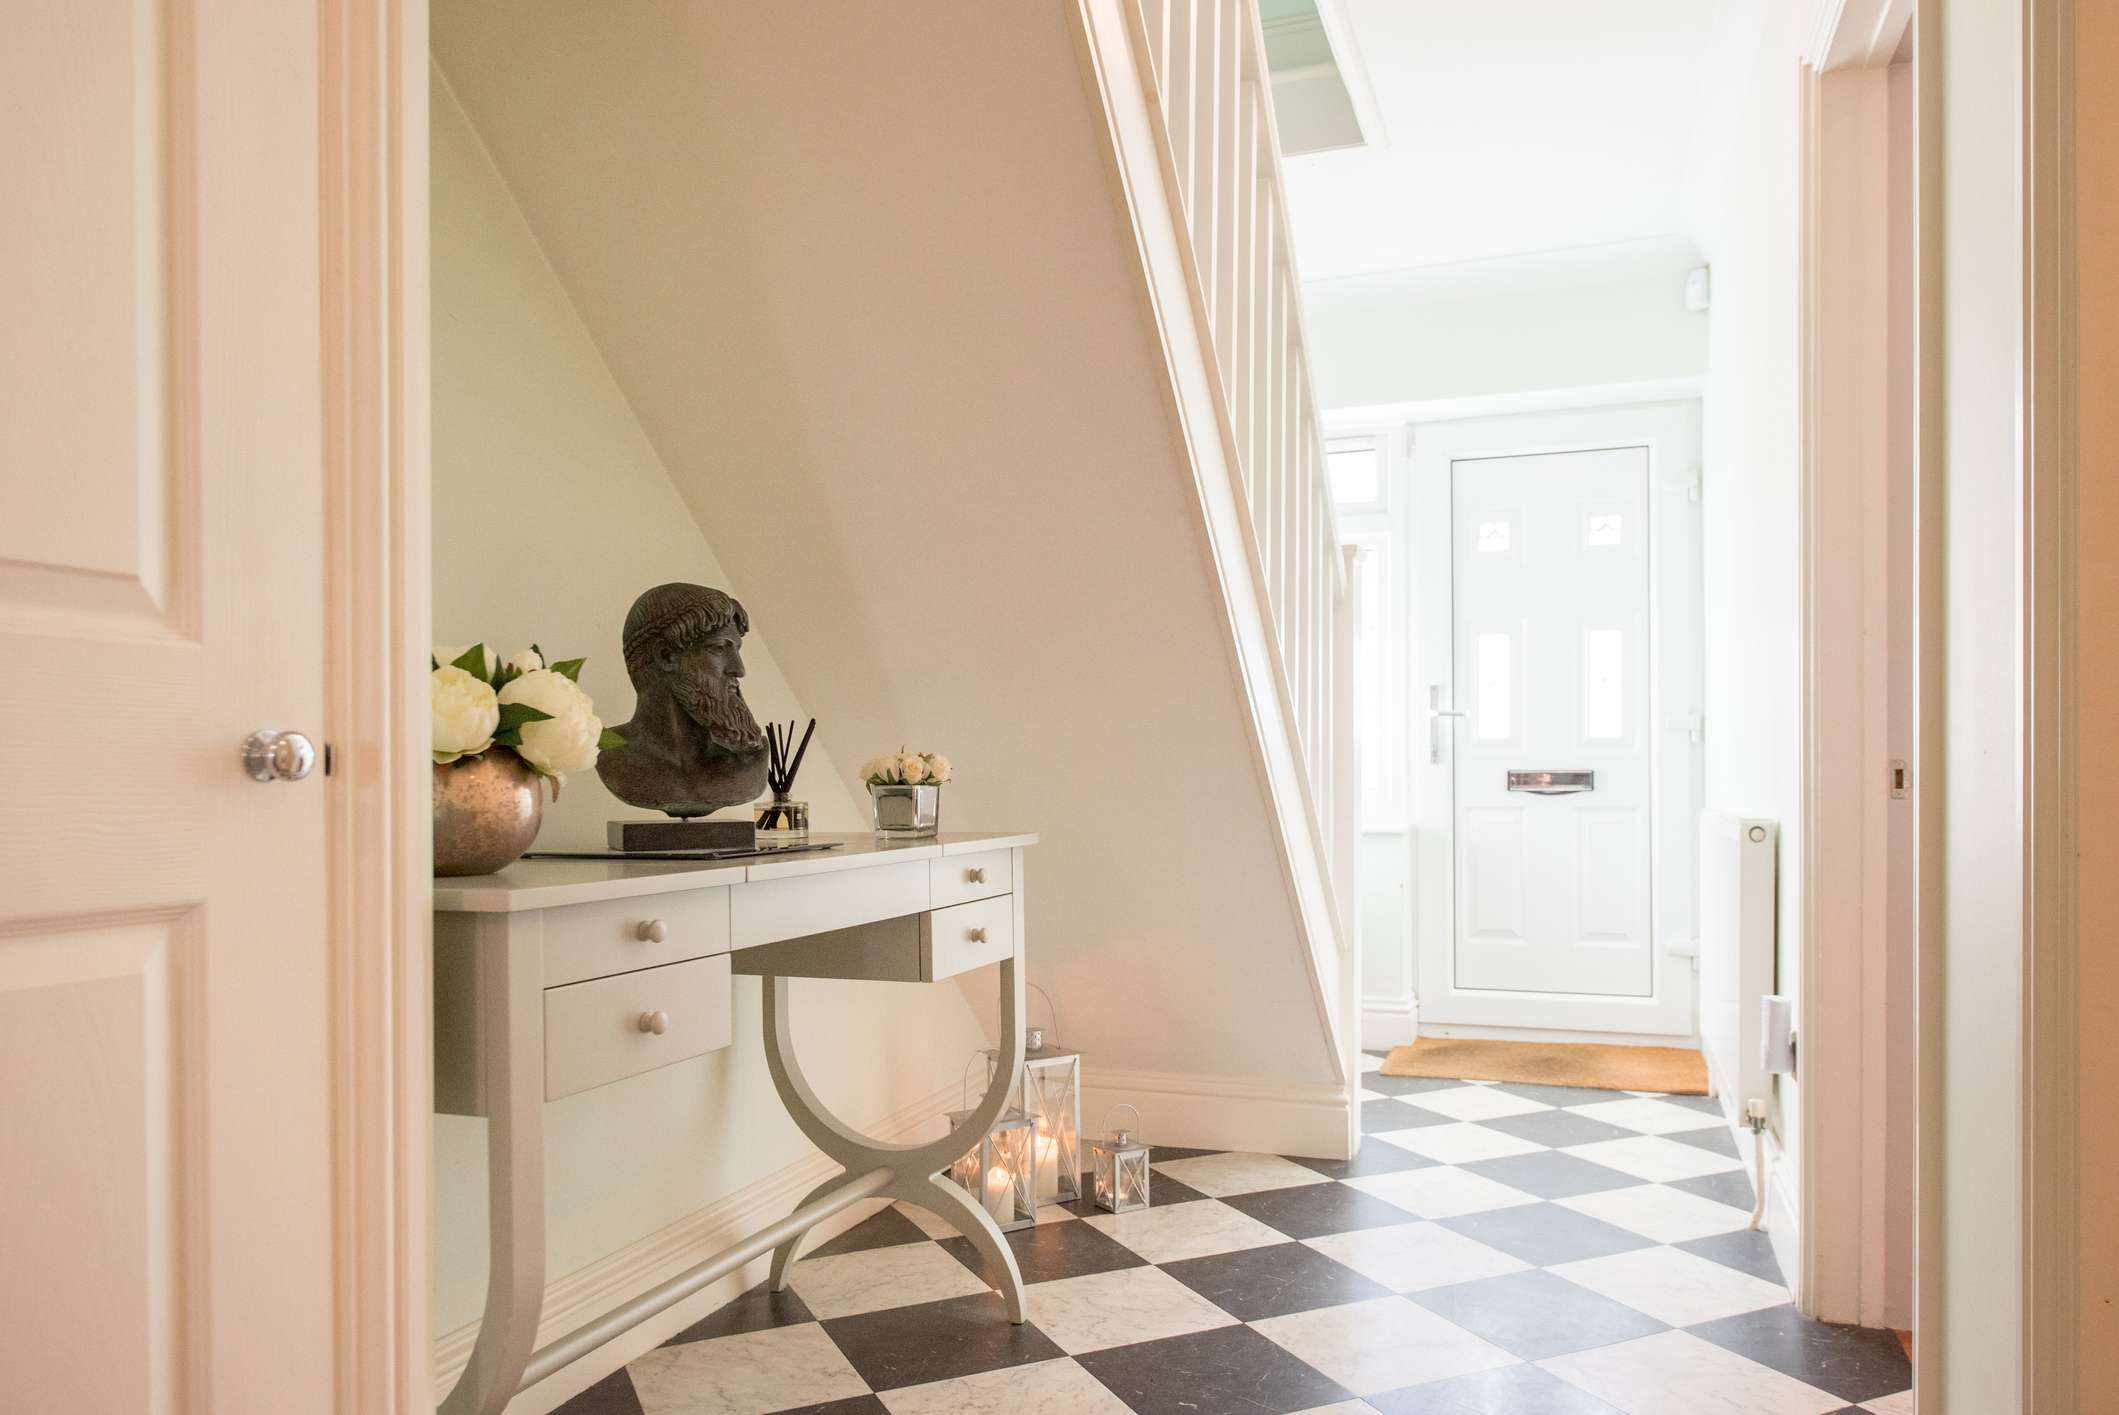 A general view of a a bright hallway within a home, black and white checkered tile floors, small dresser underneath the staircase